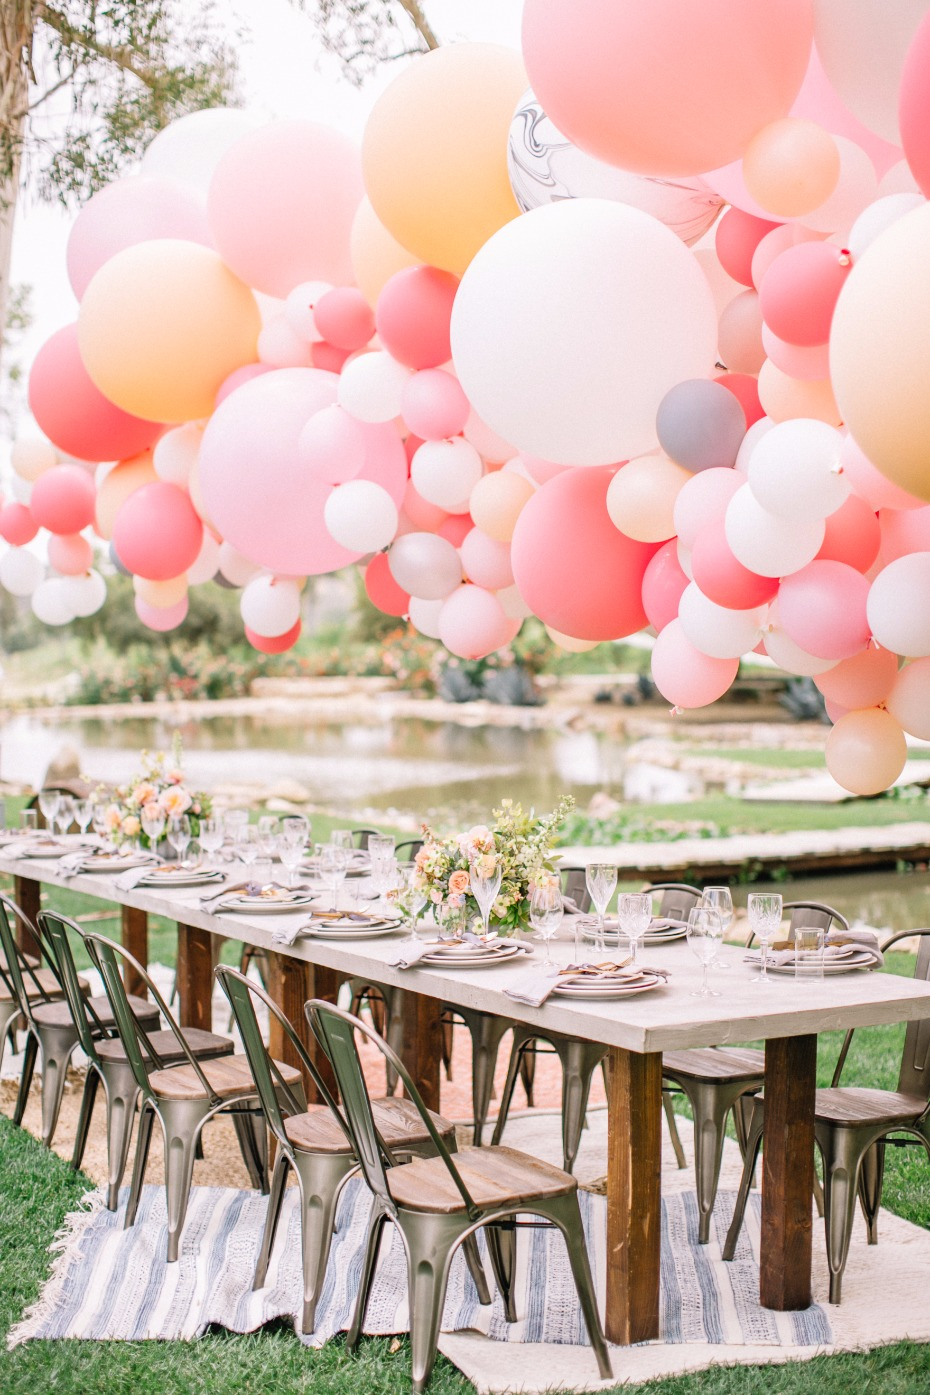 Modern chic table with giant balloon installation